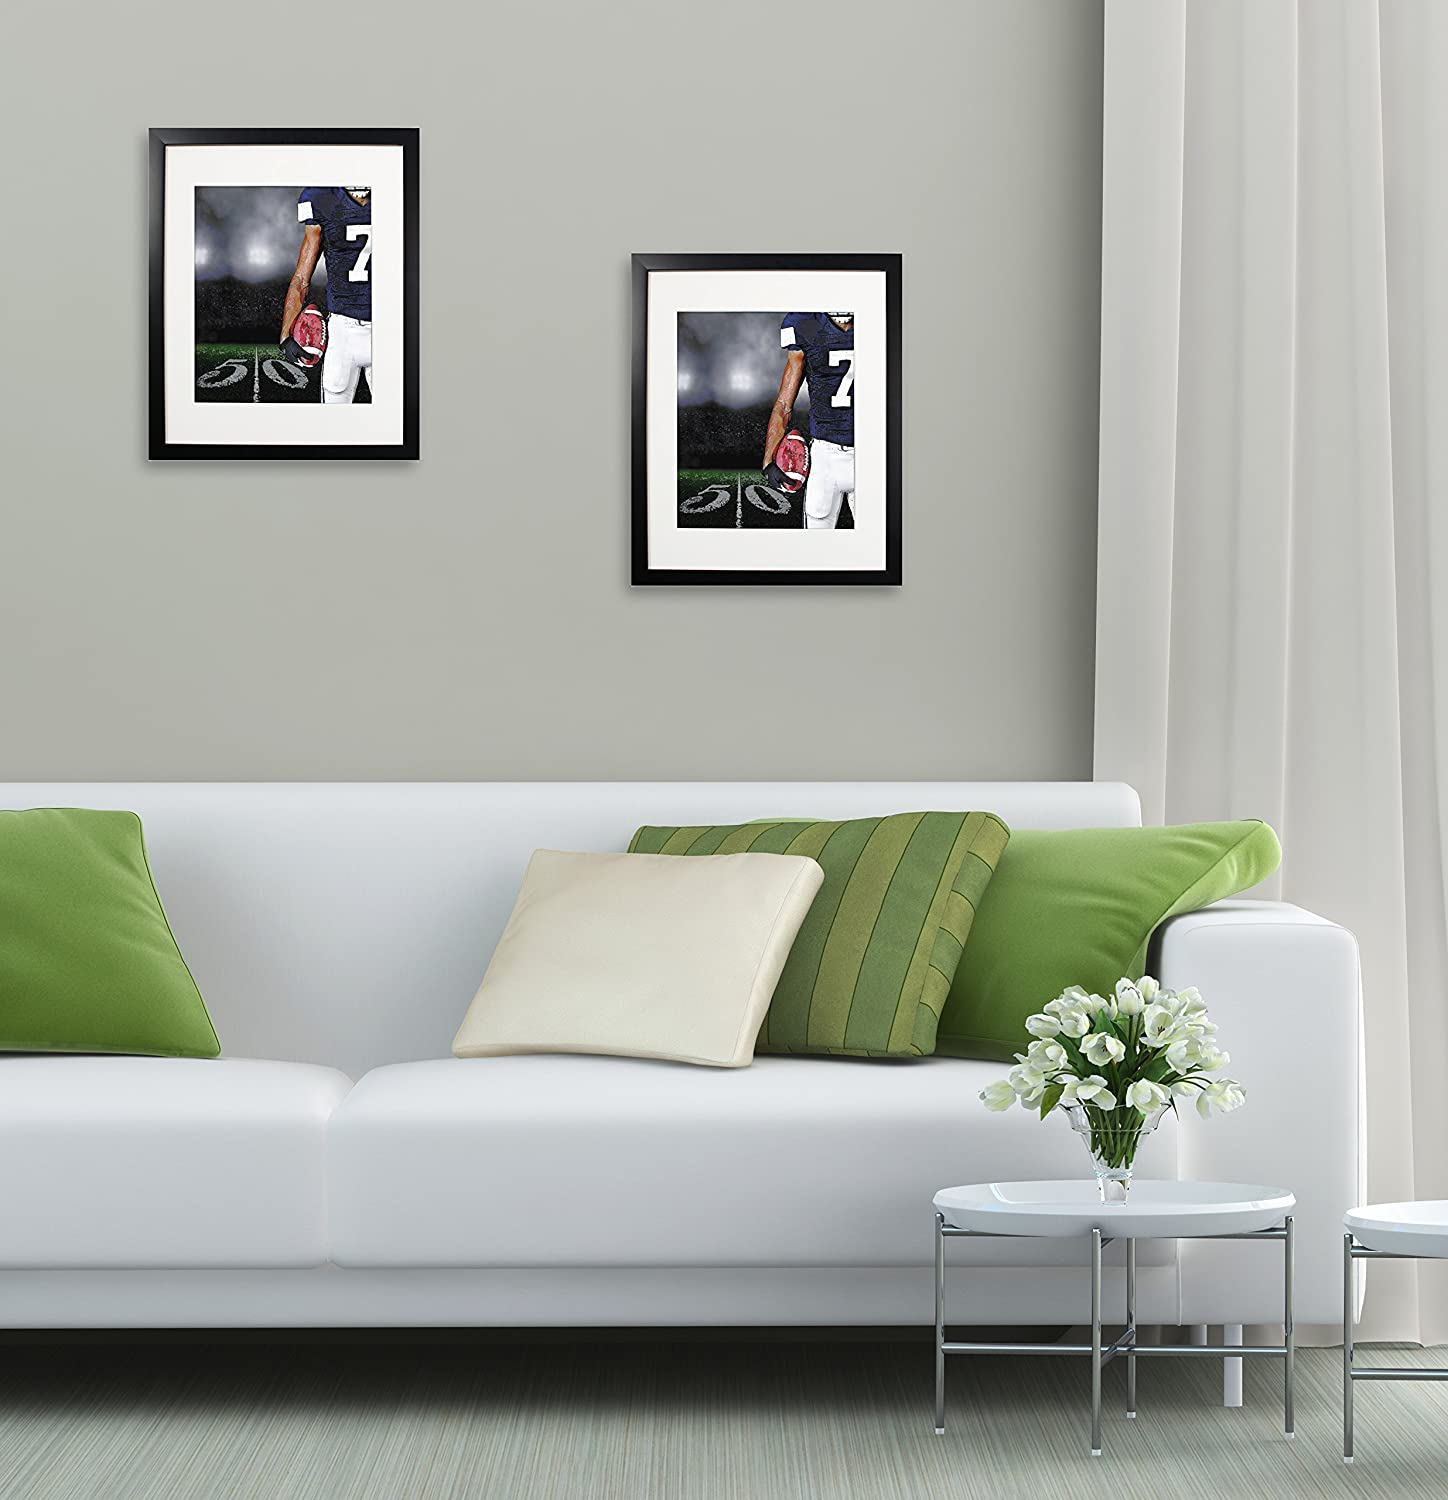 8.5x11 inch Black Picture Document Frame Made to Display Pictures or Certificate 8.5x11 Without Mat 2 Pack One Set for Wall /& Tabletop Chirstmas Holiday Home Gift